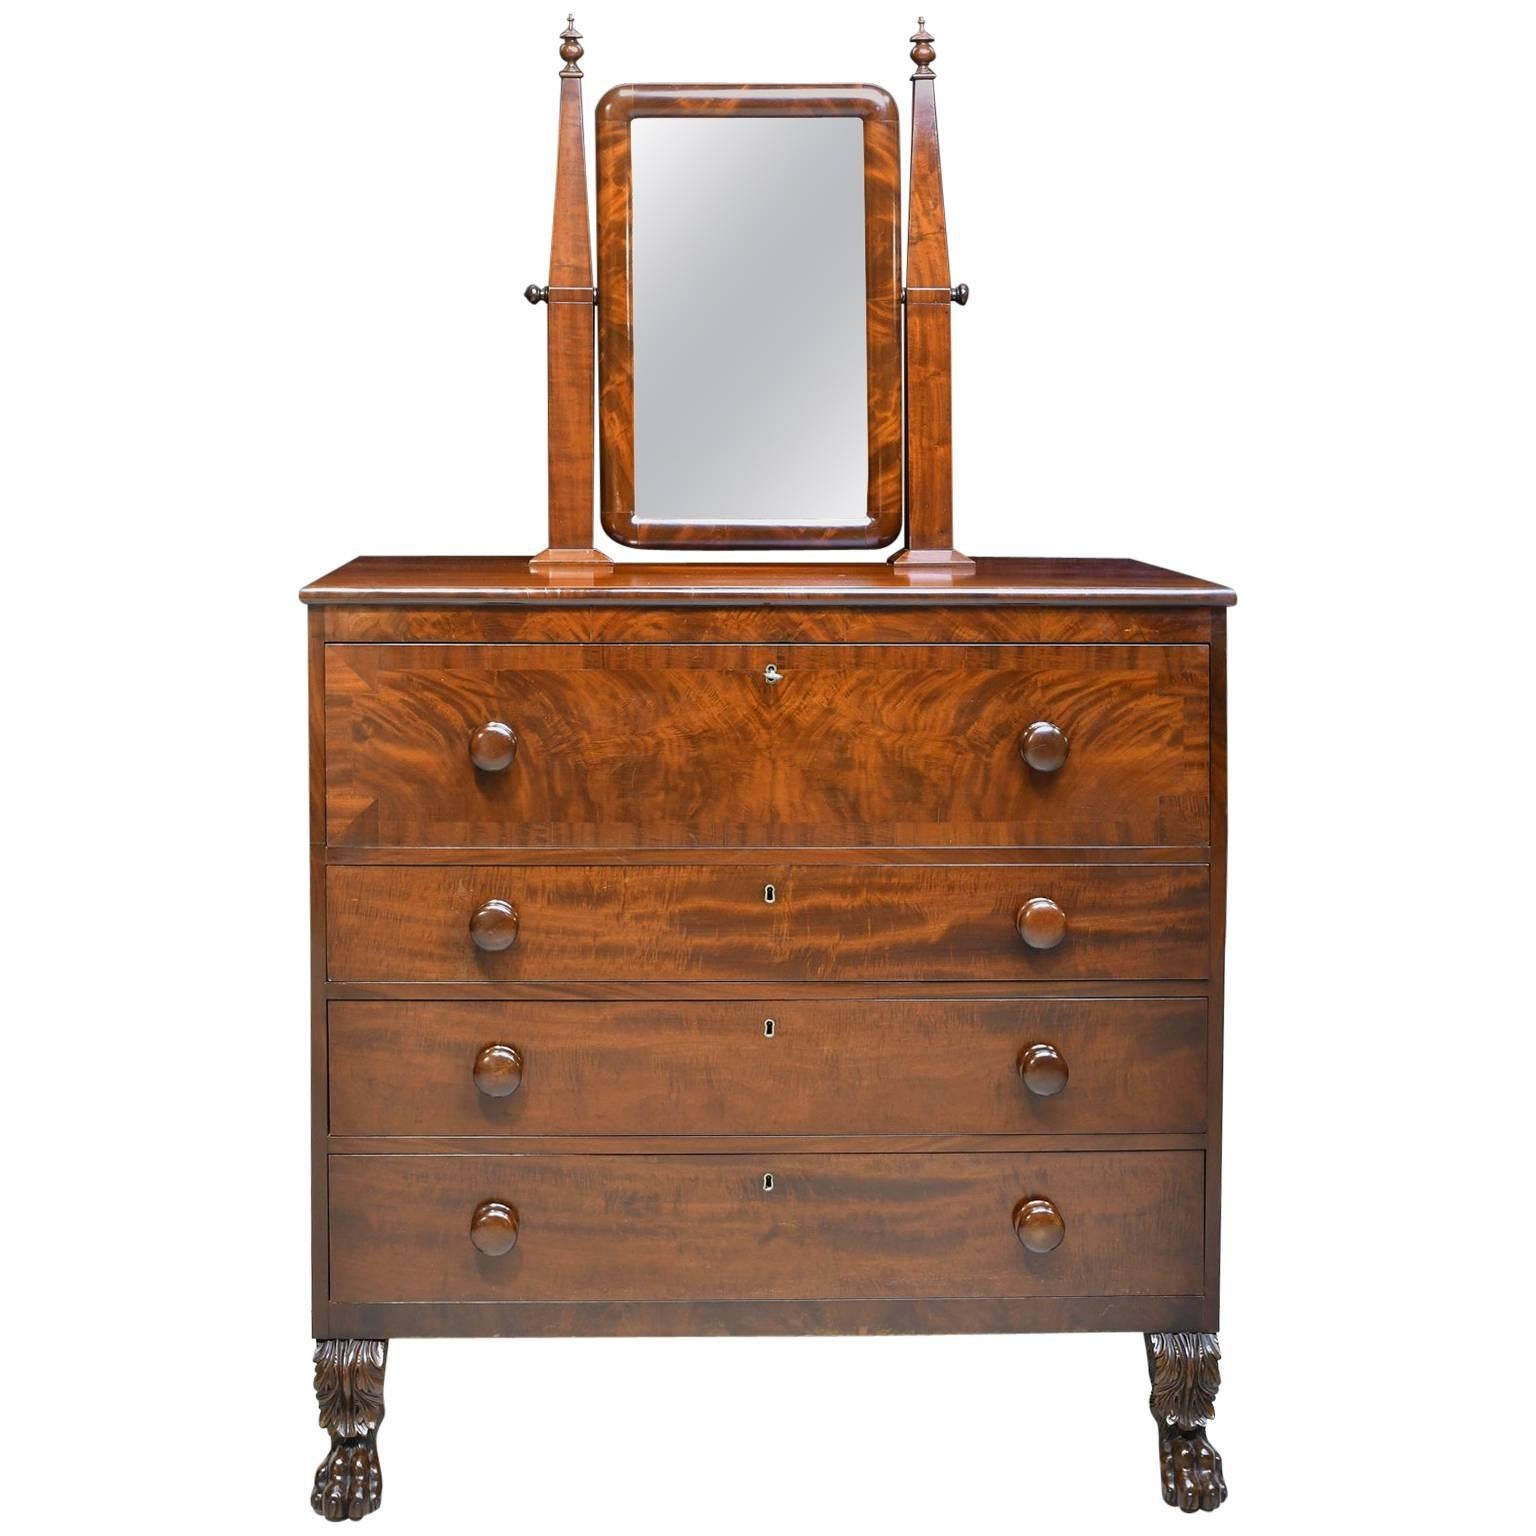 American Empire Chest Of Drawers With Mirror In Mahogany, Maine, Circa 1830  For Sale